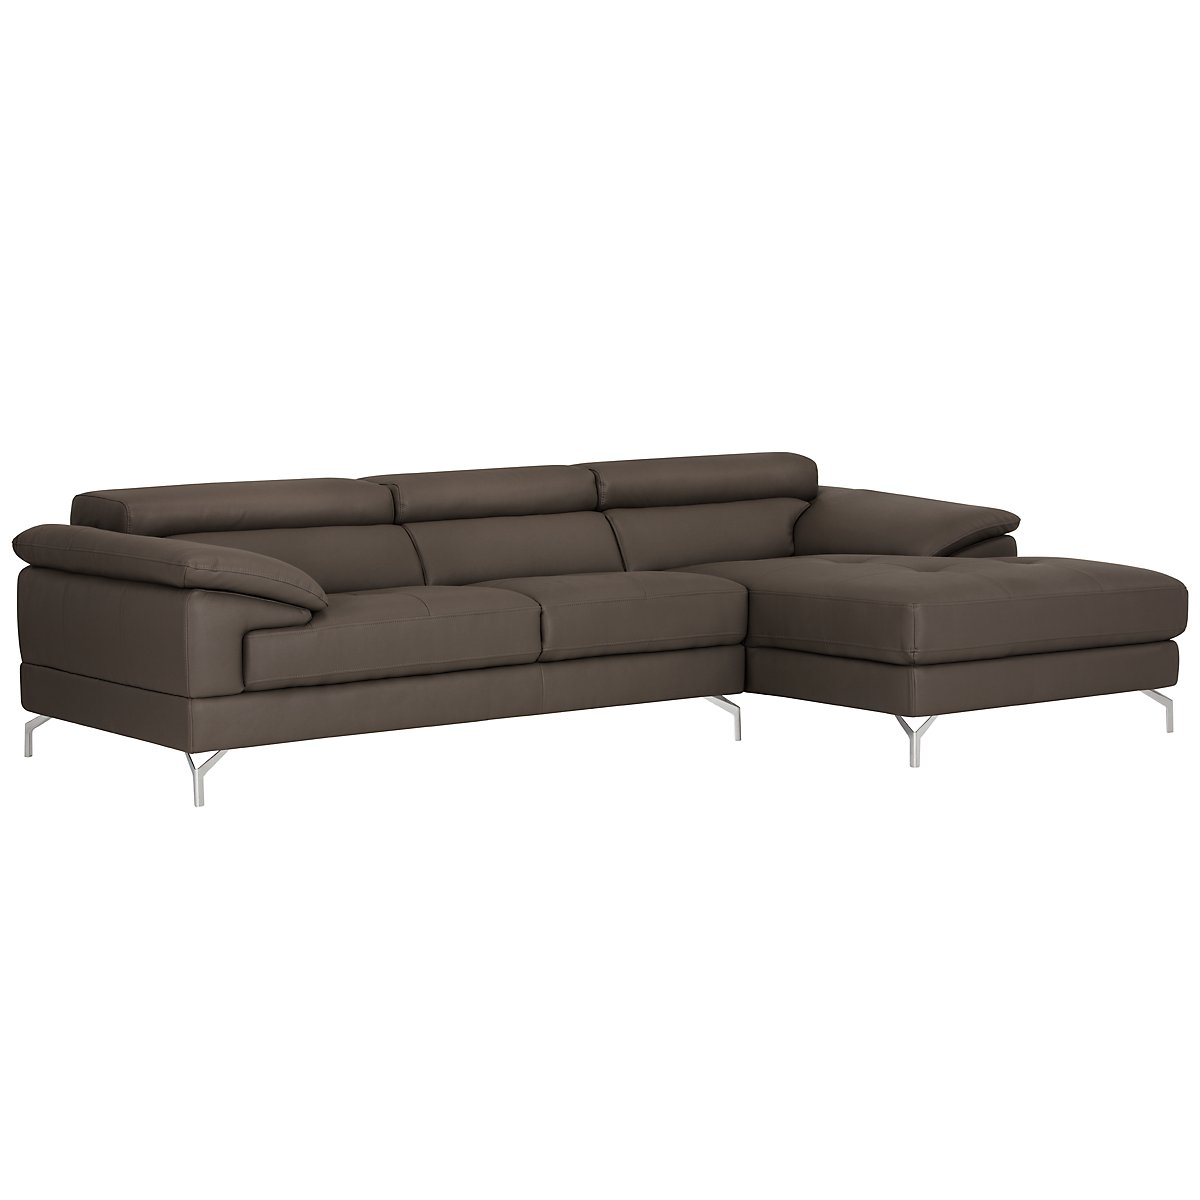 City furniture dash dk gray microfiber right chaise sectional for Gray microfiber sectional sofa with chaise